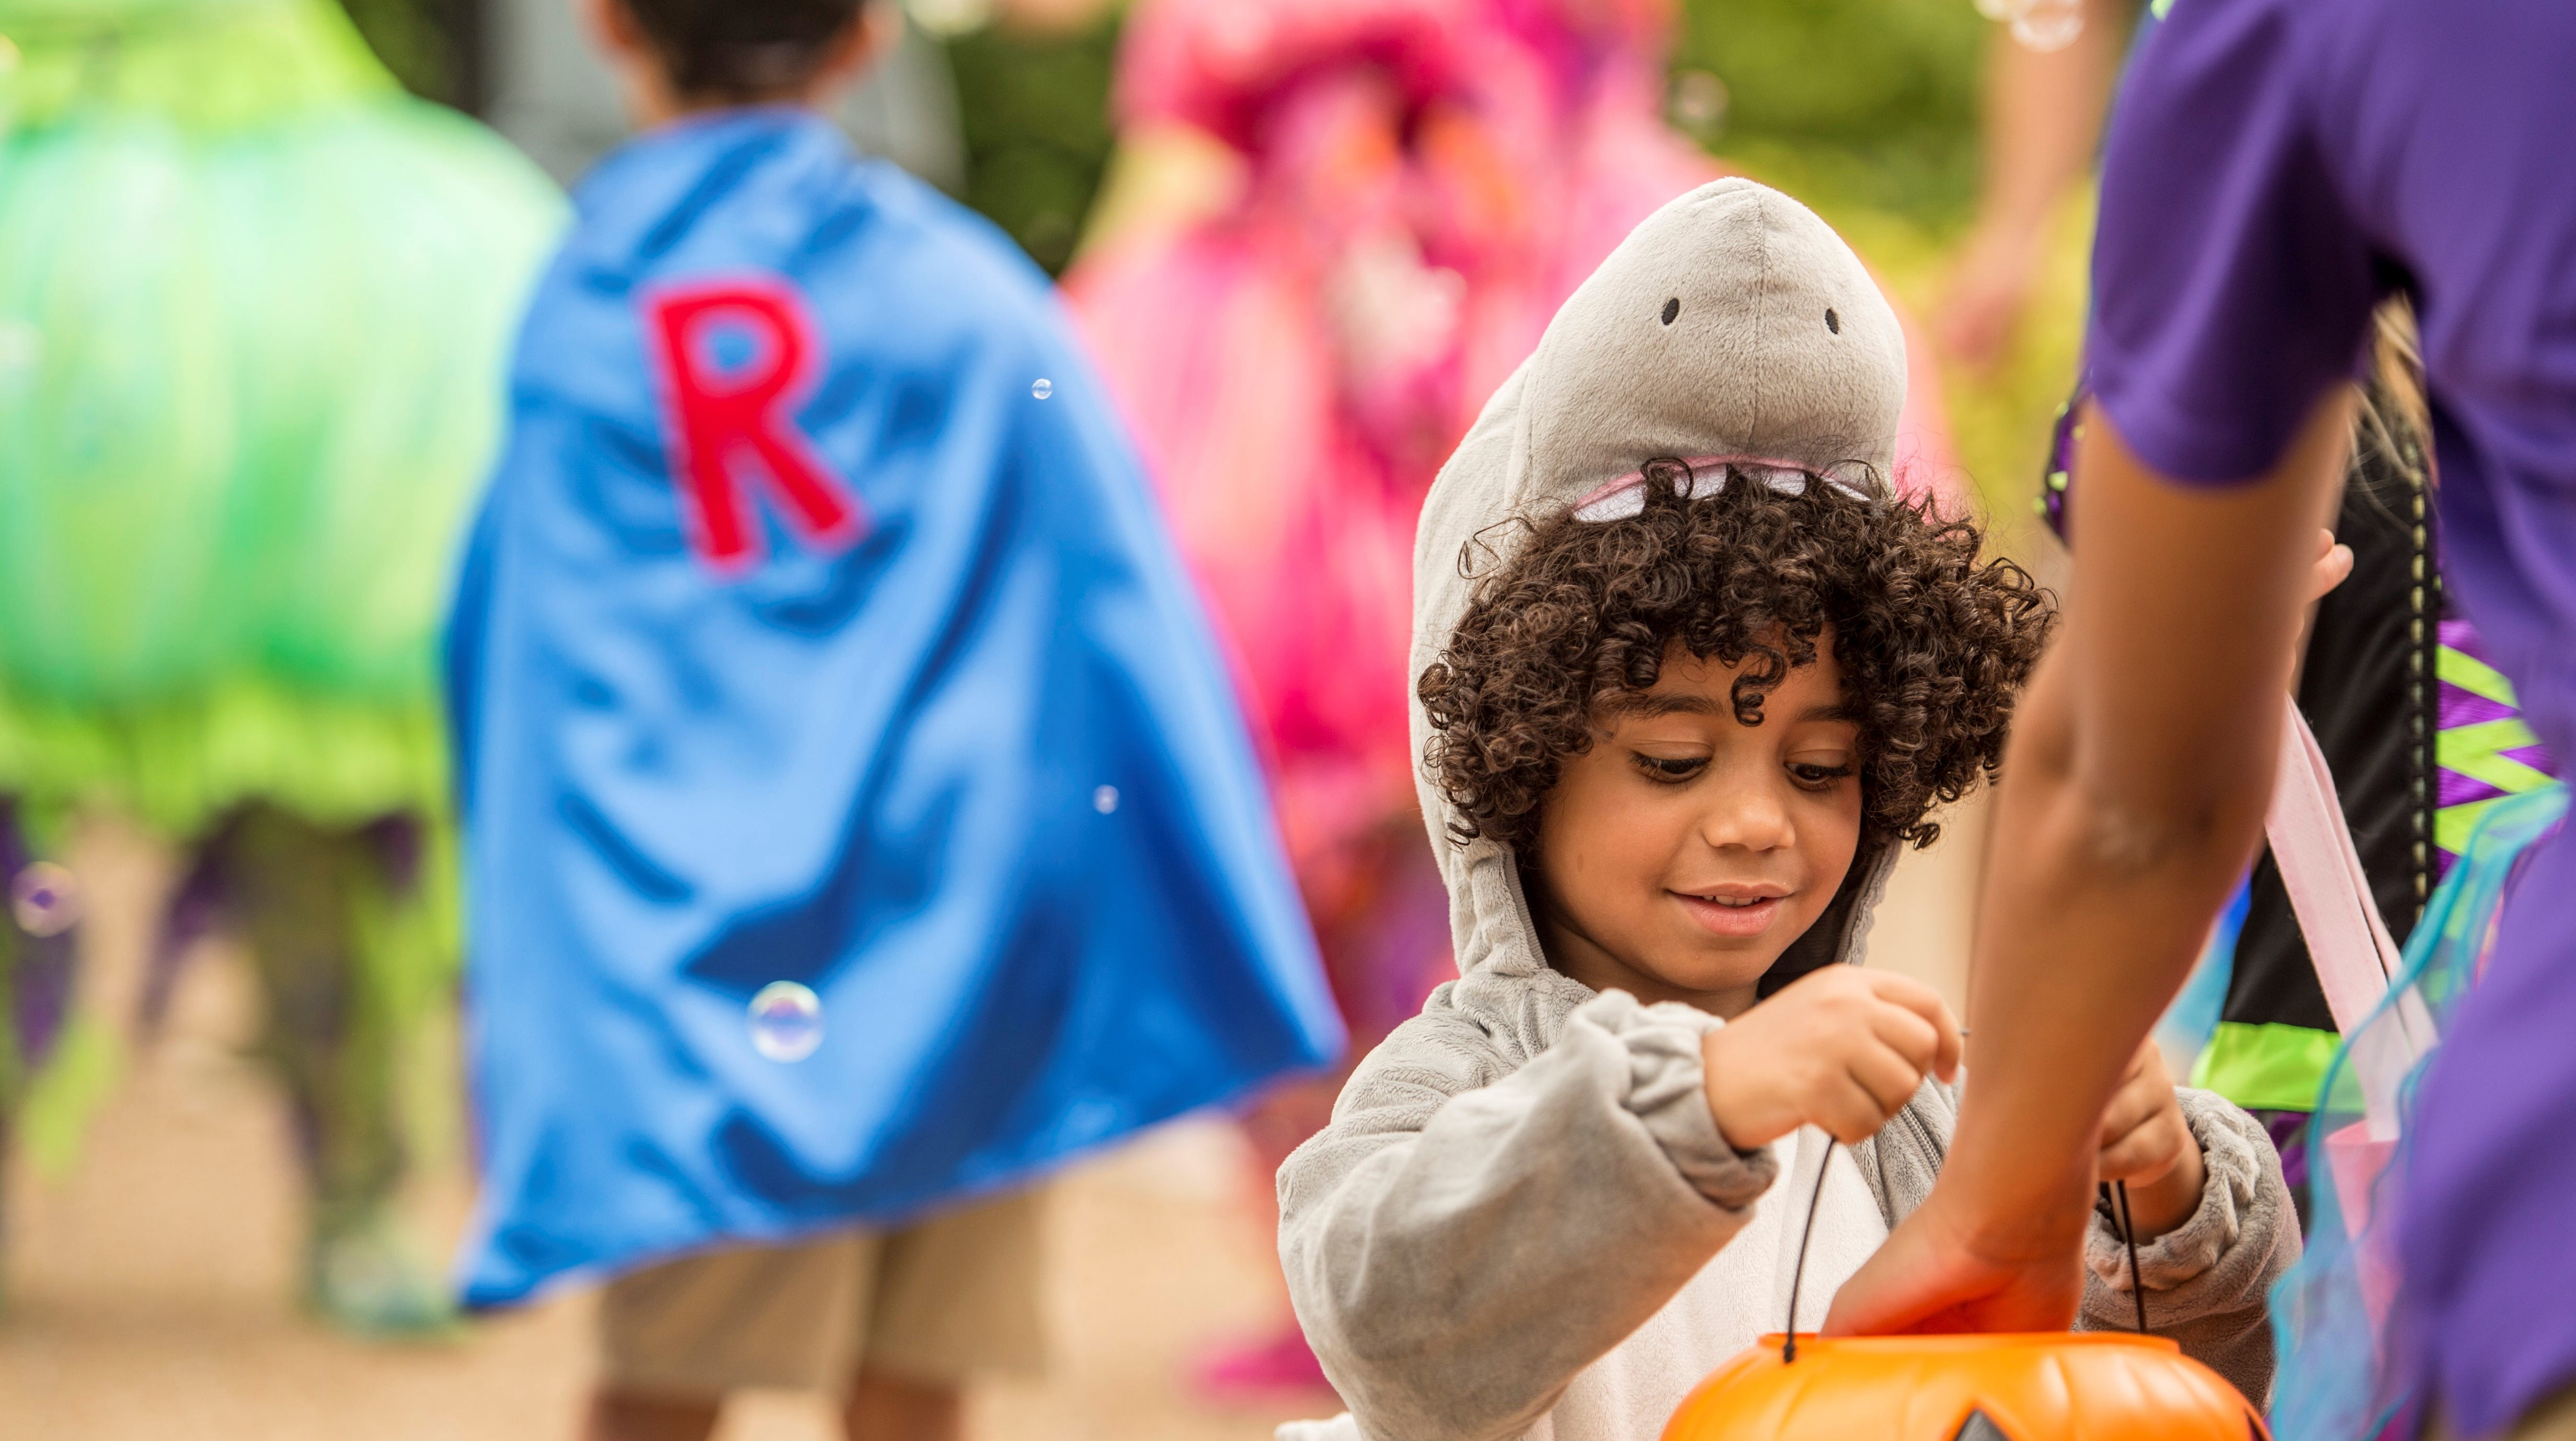 halloween 2018: events for kids and teens in new jersey, nyc and pa